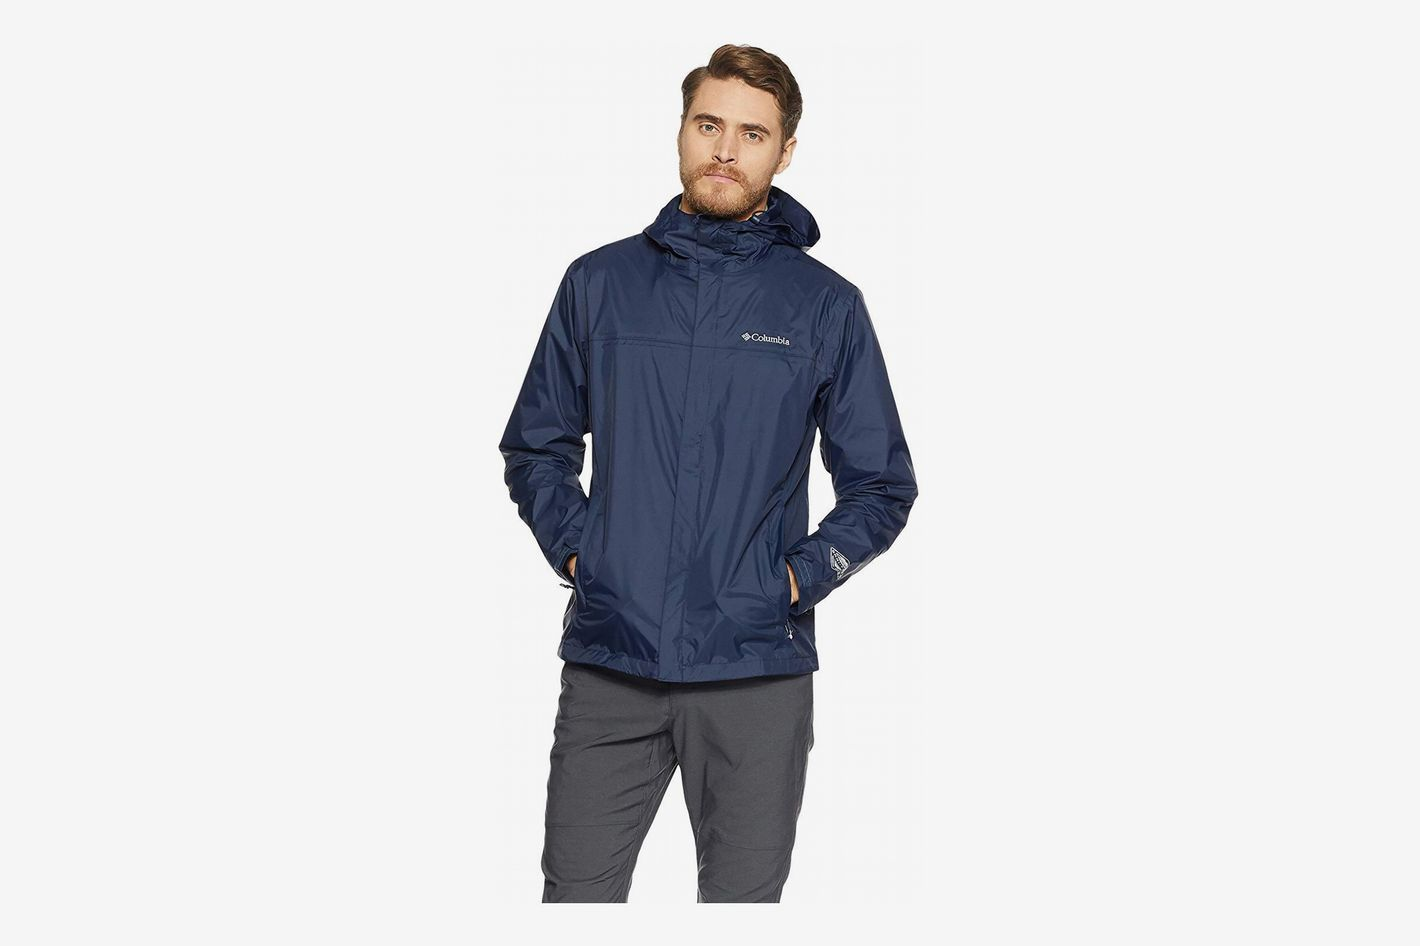 990400d3d80 Columbia Men's Watertight II Front-Zip Hooded Rain Jacket